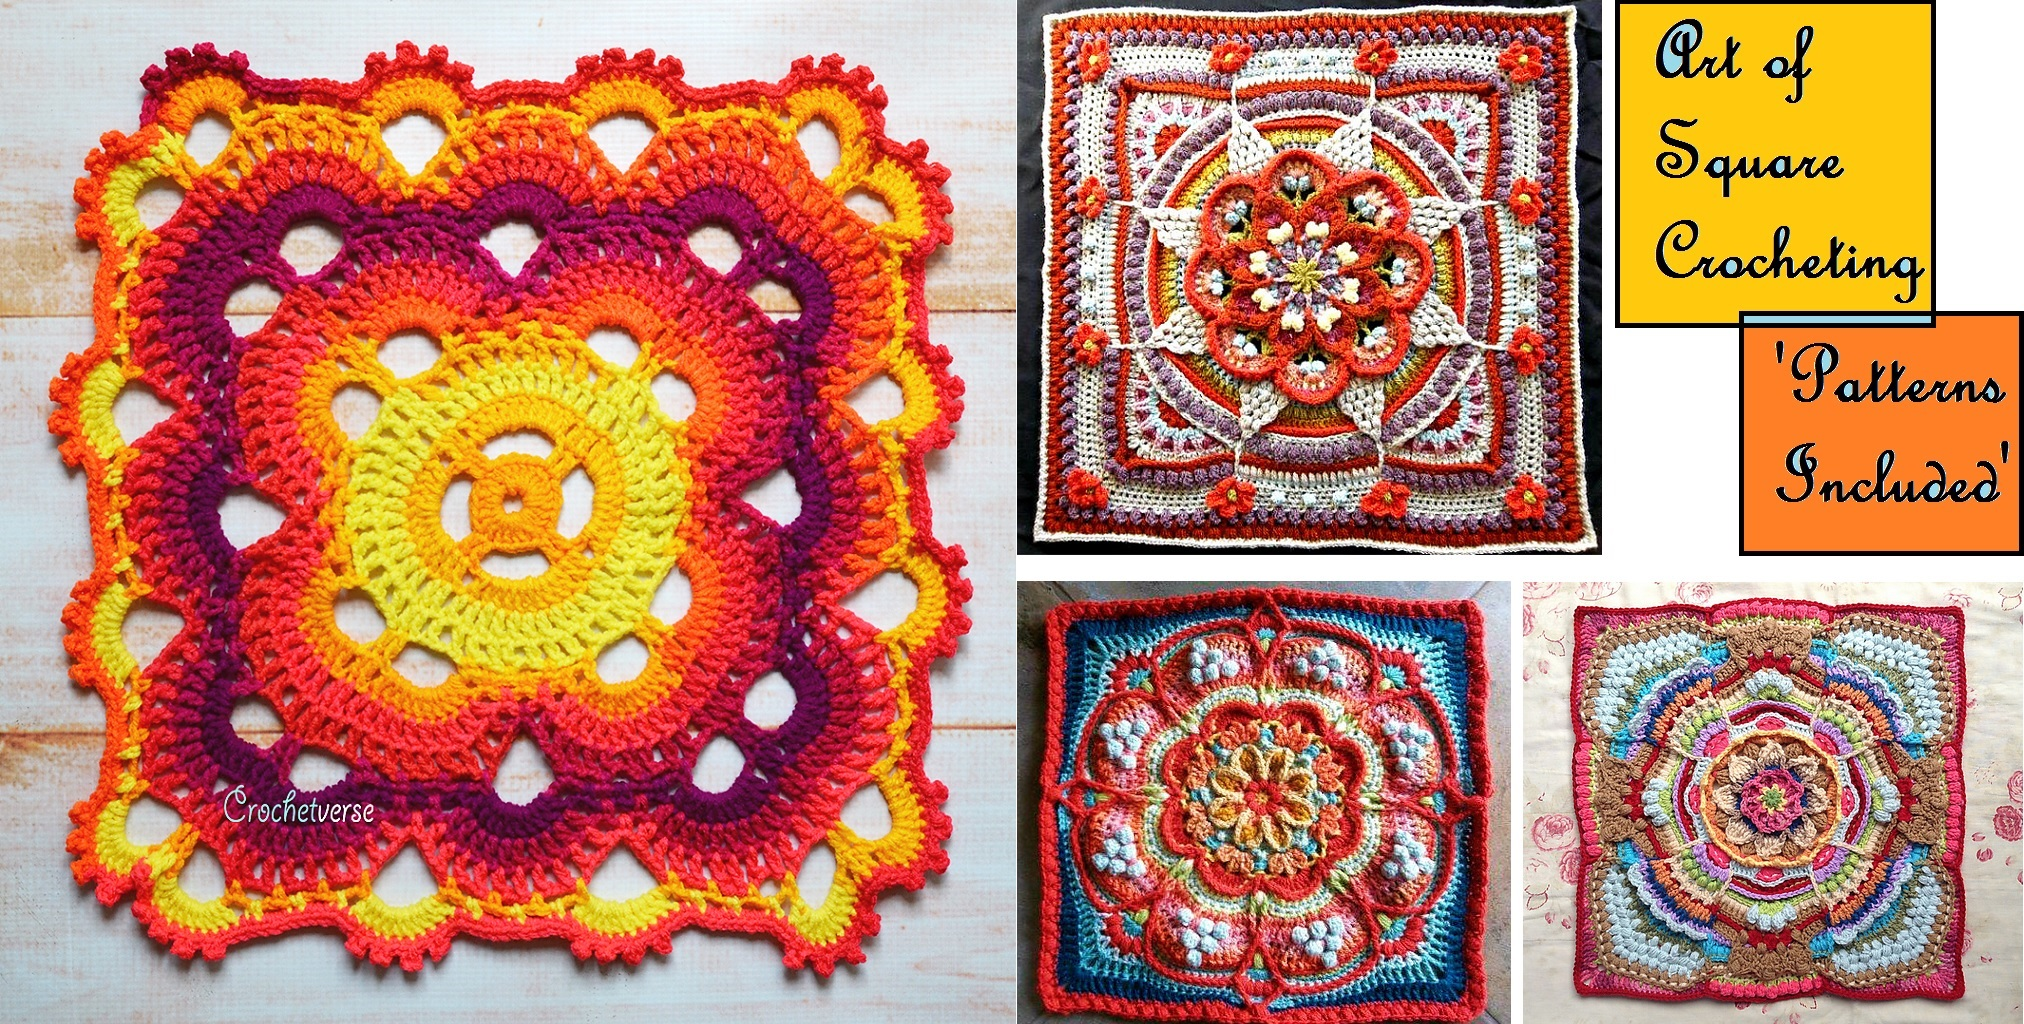 Art of Square Crocheting – Patterns Included - Design Peak